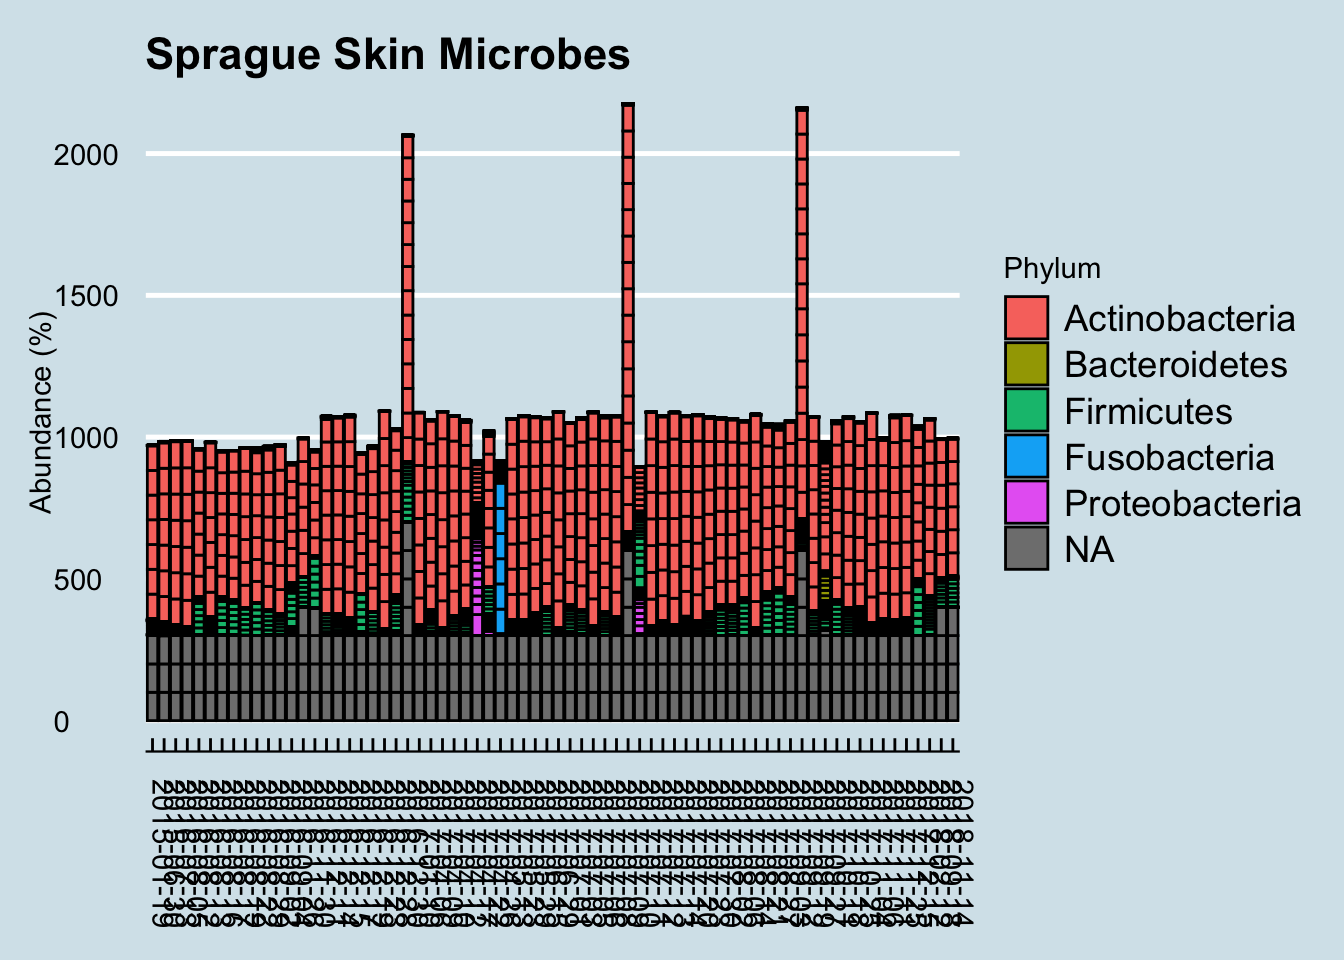 Skin microbes, phylum level, over time.